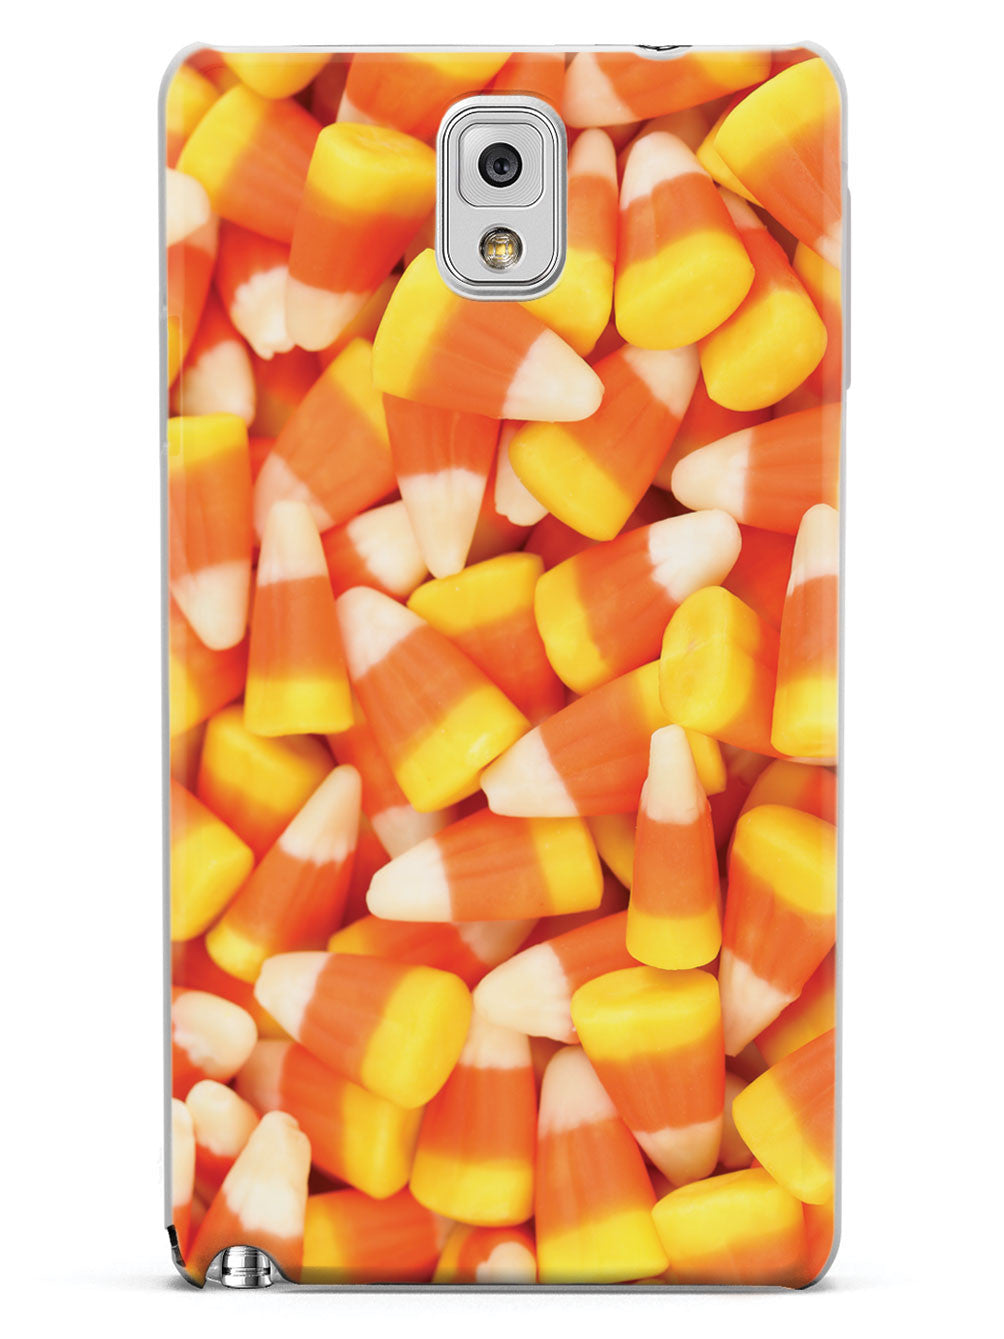 Candy Corn Case